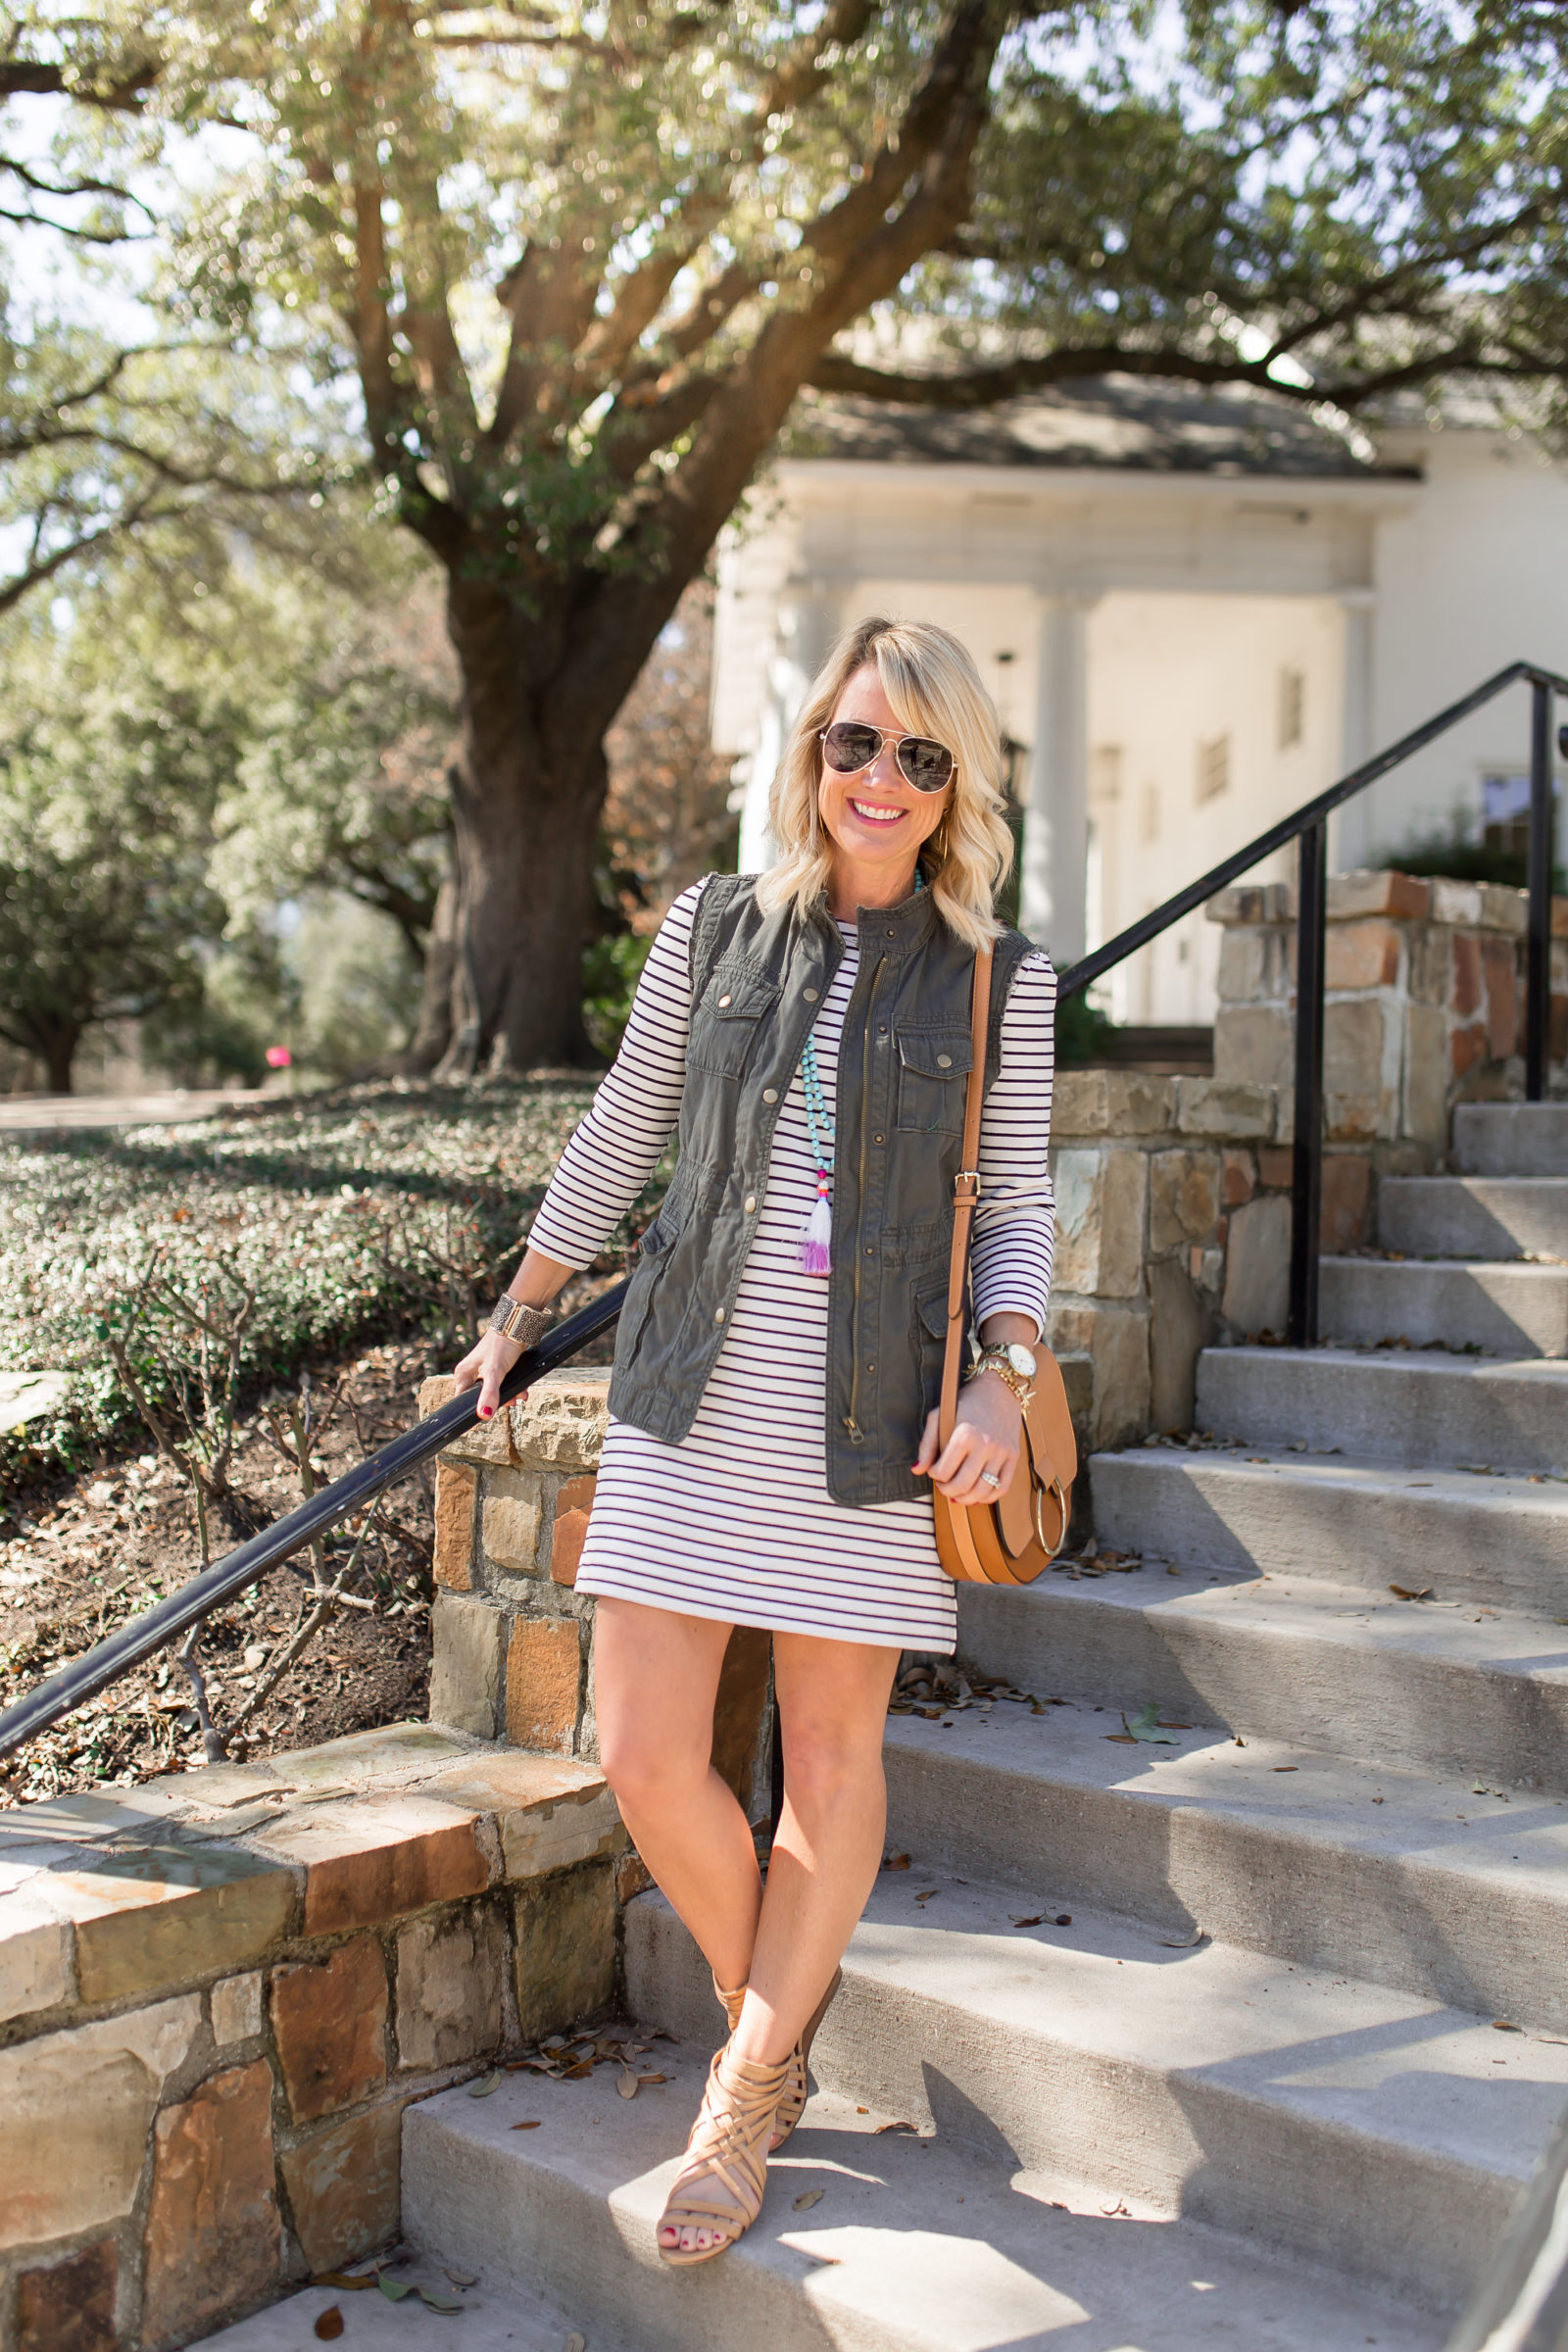 striped dress with military vest outfit at arlington hall dallas